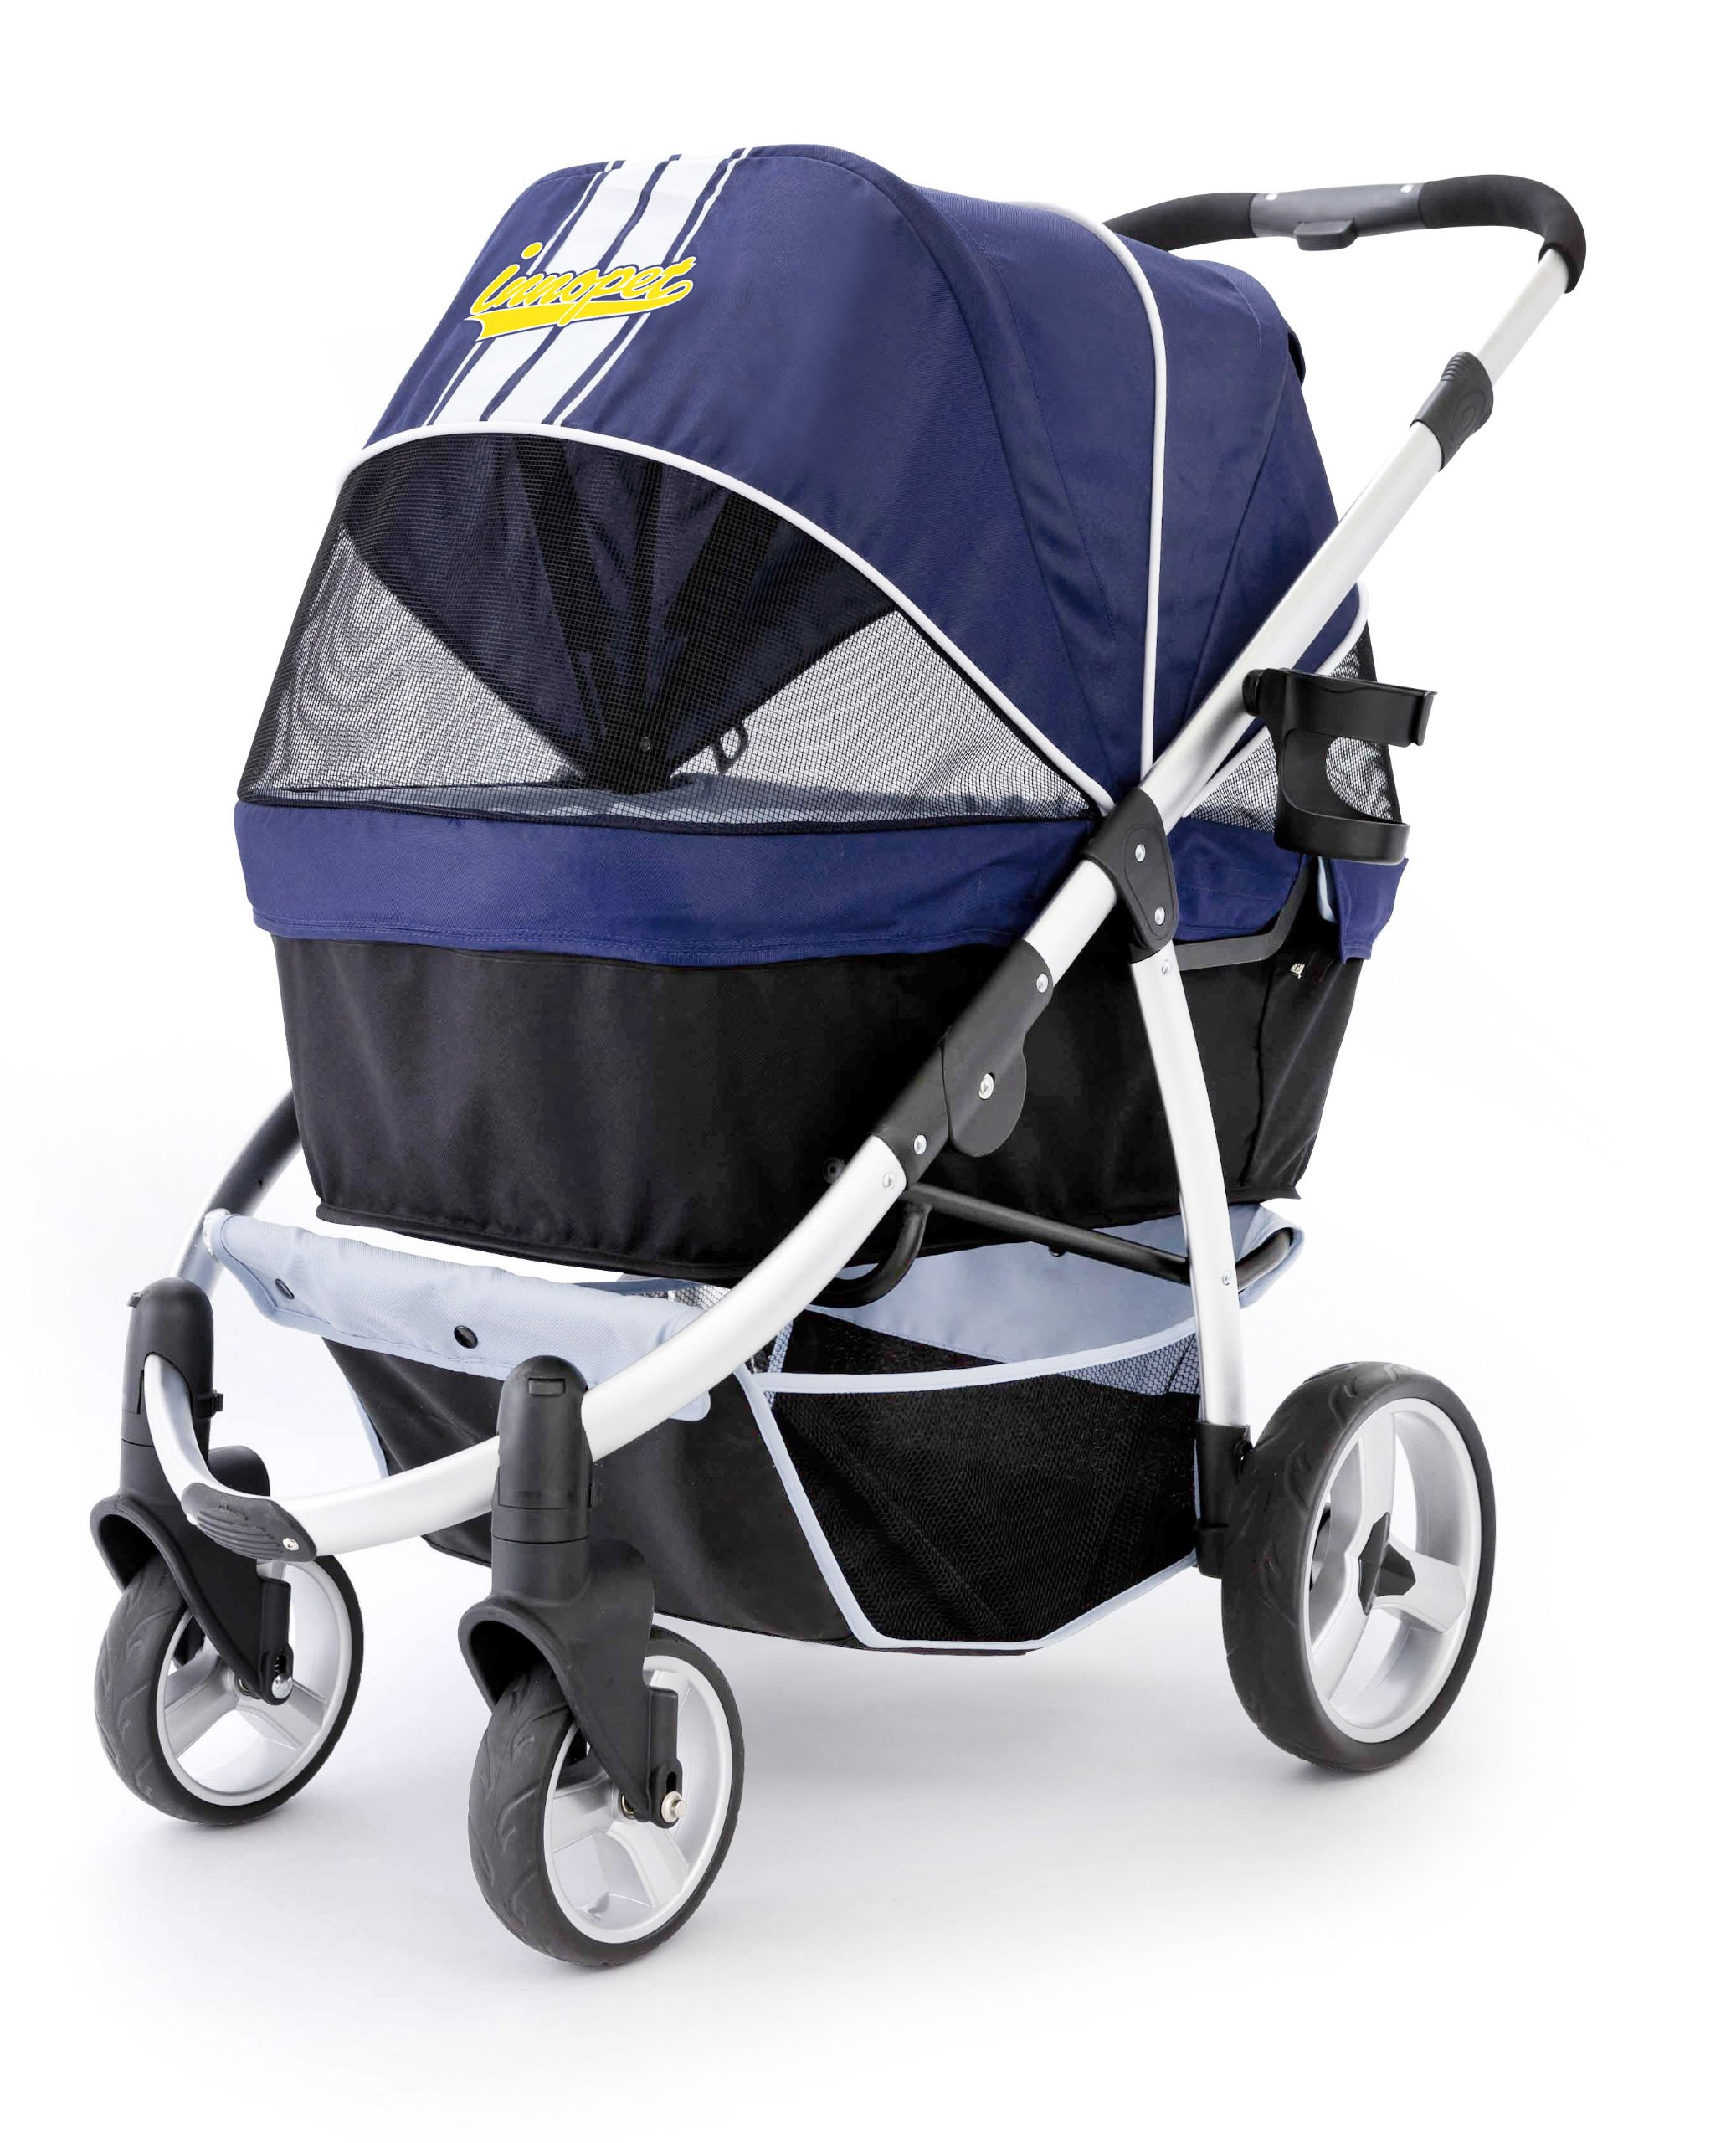 Innopet Pet Stroller,IPS-06/Navy-Blue, Dog Carrier, Trolley, Trailer, Buggy Retro. Foldable pet Buggy, Pushchair, pram for Dogs and Cats by Innopet